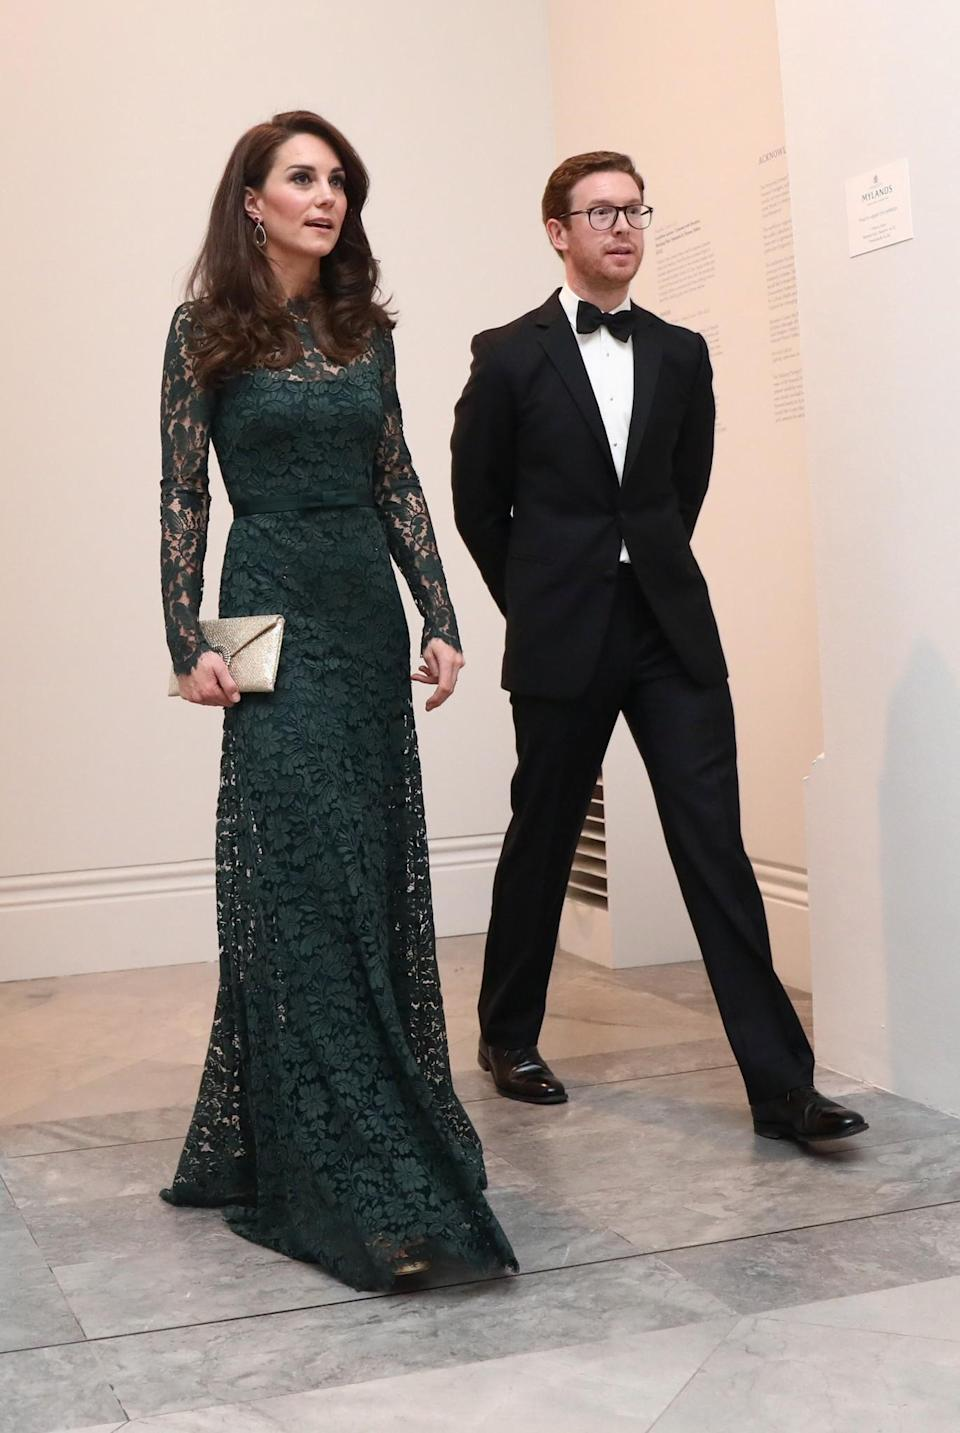 <p>Kate was a complete vision in an emerald lacy gown by Temperley London. Attending her second National Portrait Gala, the Duchess stole the show in the floor-length look accompanied by golden accessories: a glitter clutch by Wilbur and Gussie and strappy Jimmy Choo sandals.<br><i>[Photo: PA]</i> </p>